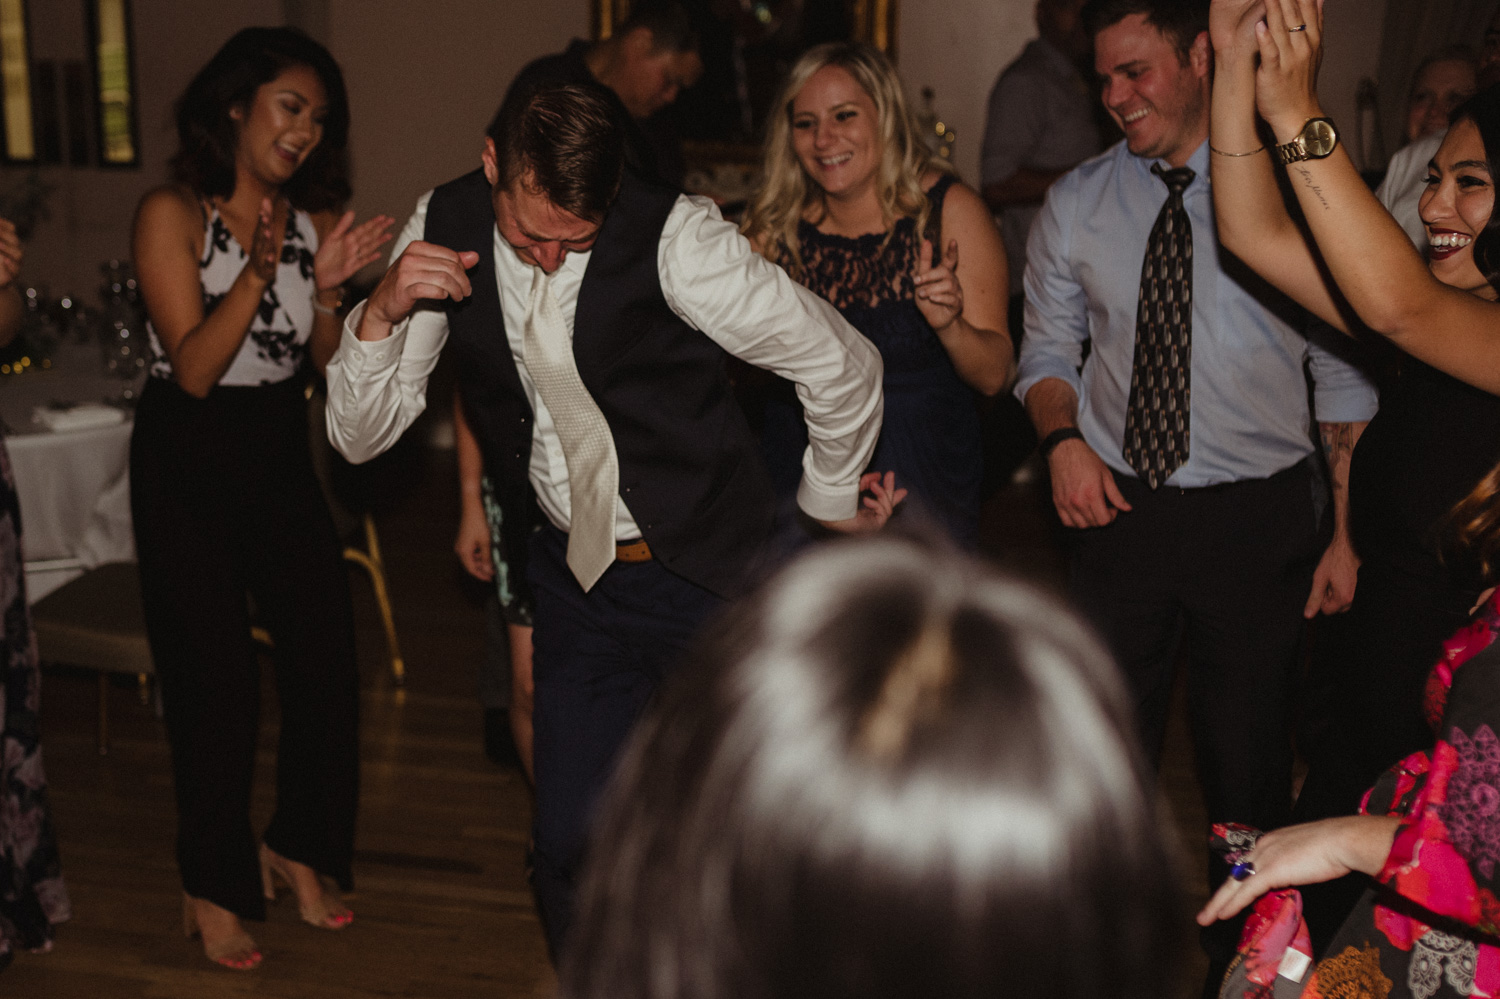 Wedgewood Sequoia Mansion wedding groom dancing between his friends photo